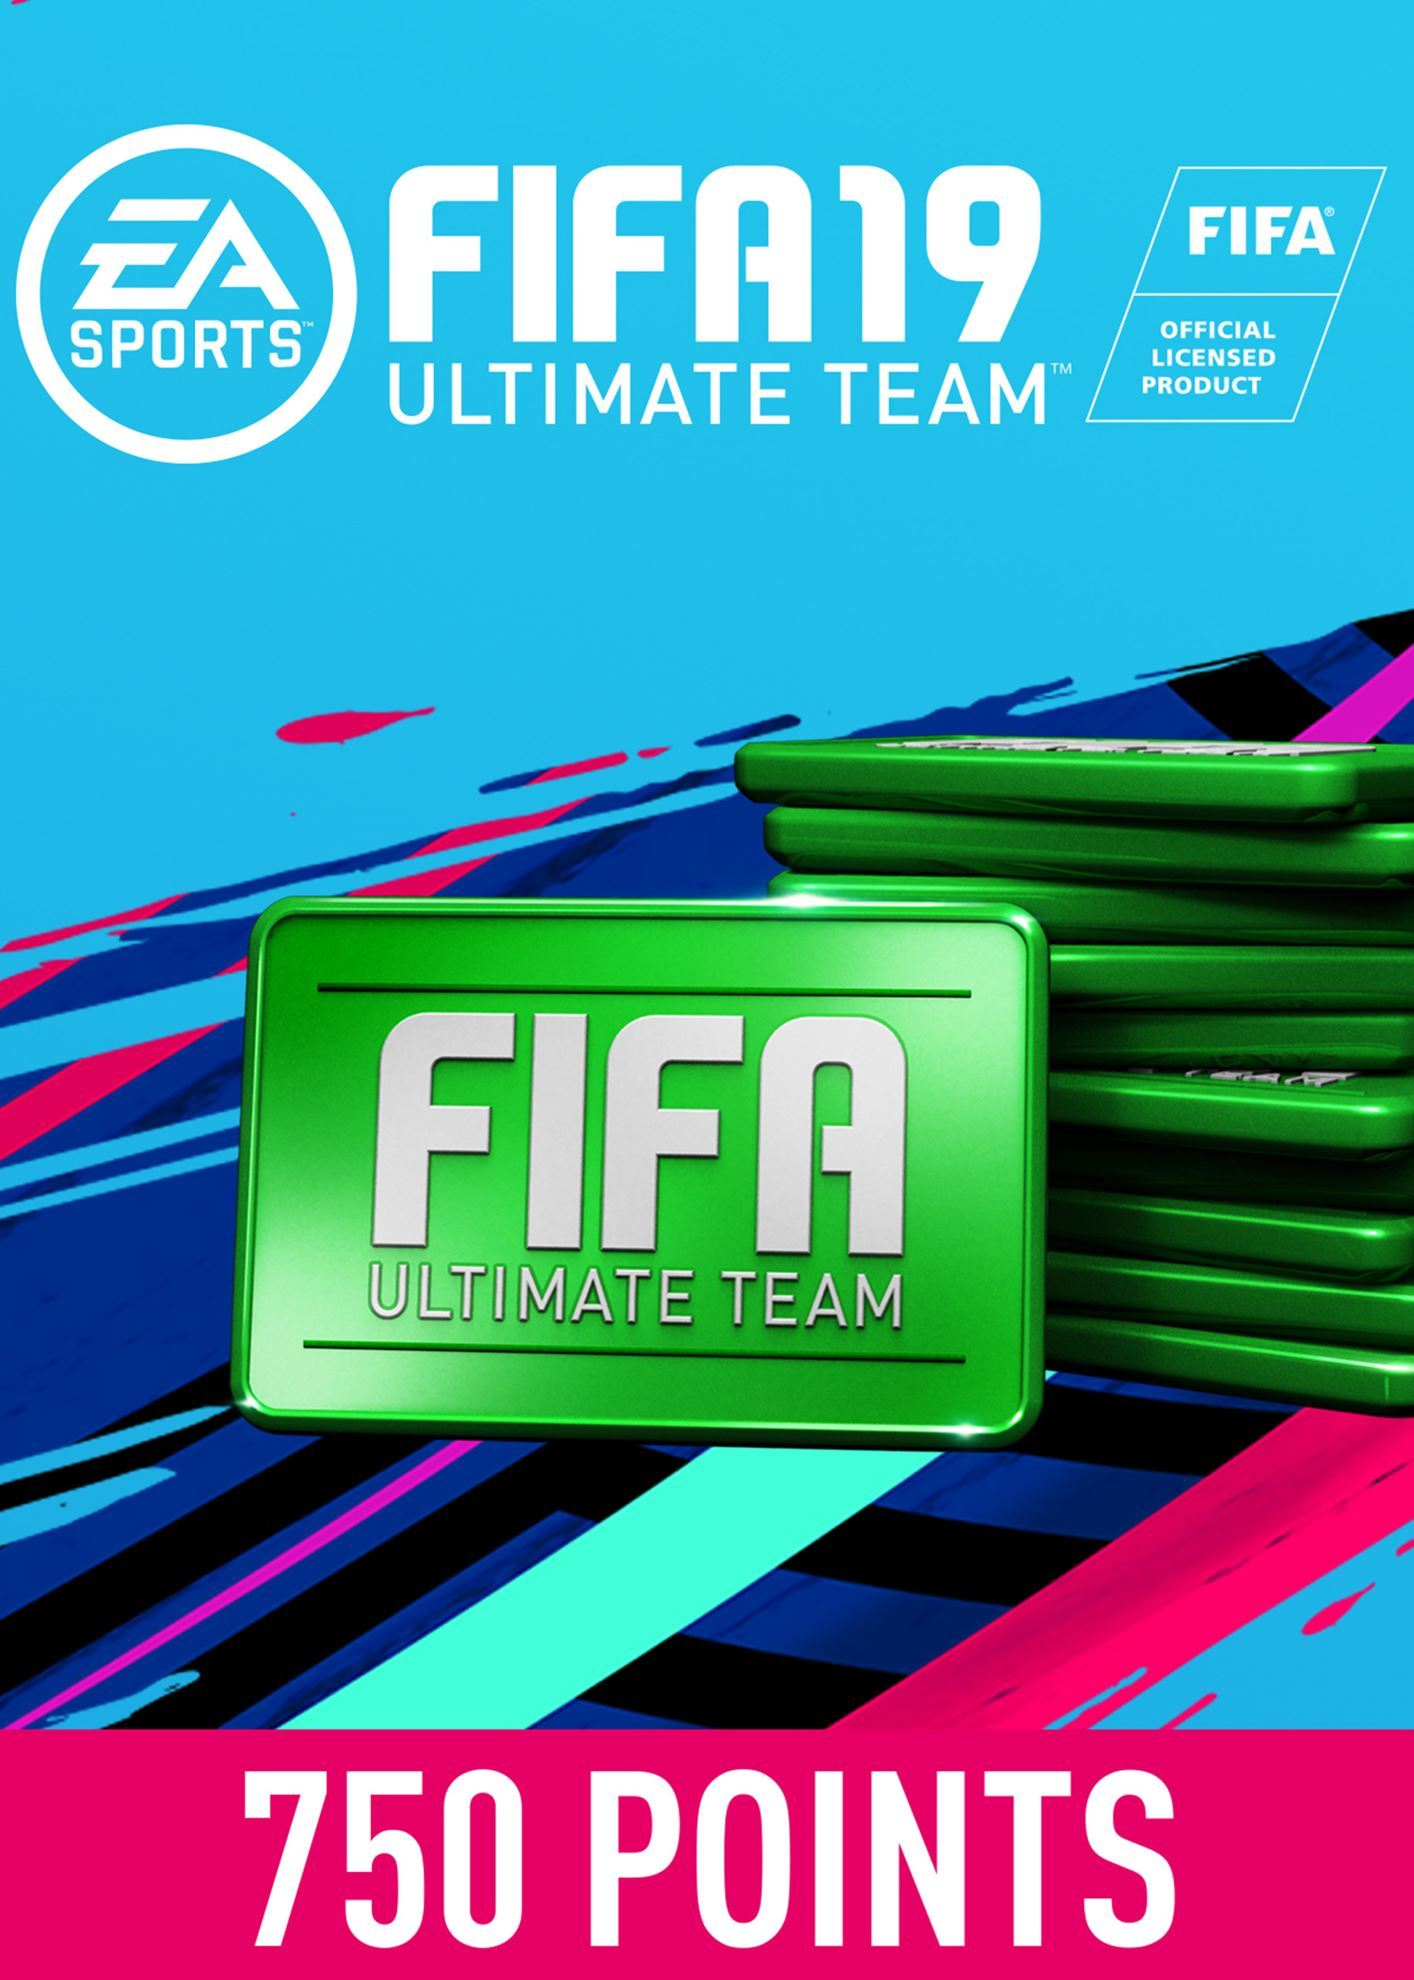 FIFA 19 ULTIMATE TEAM FIFA POINTS 750